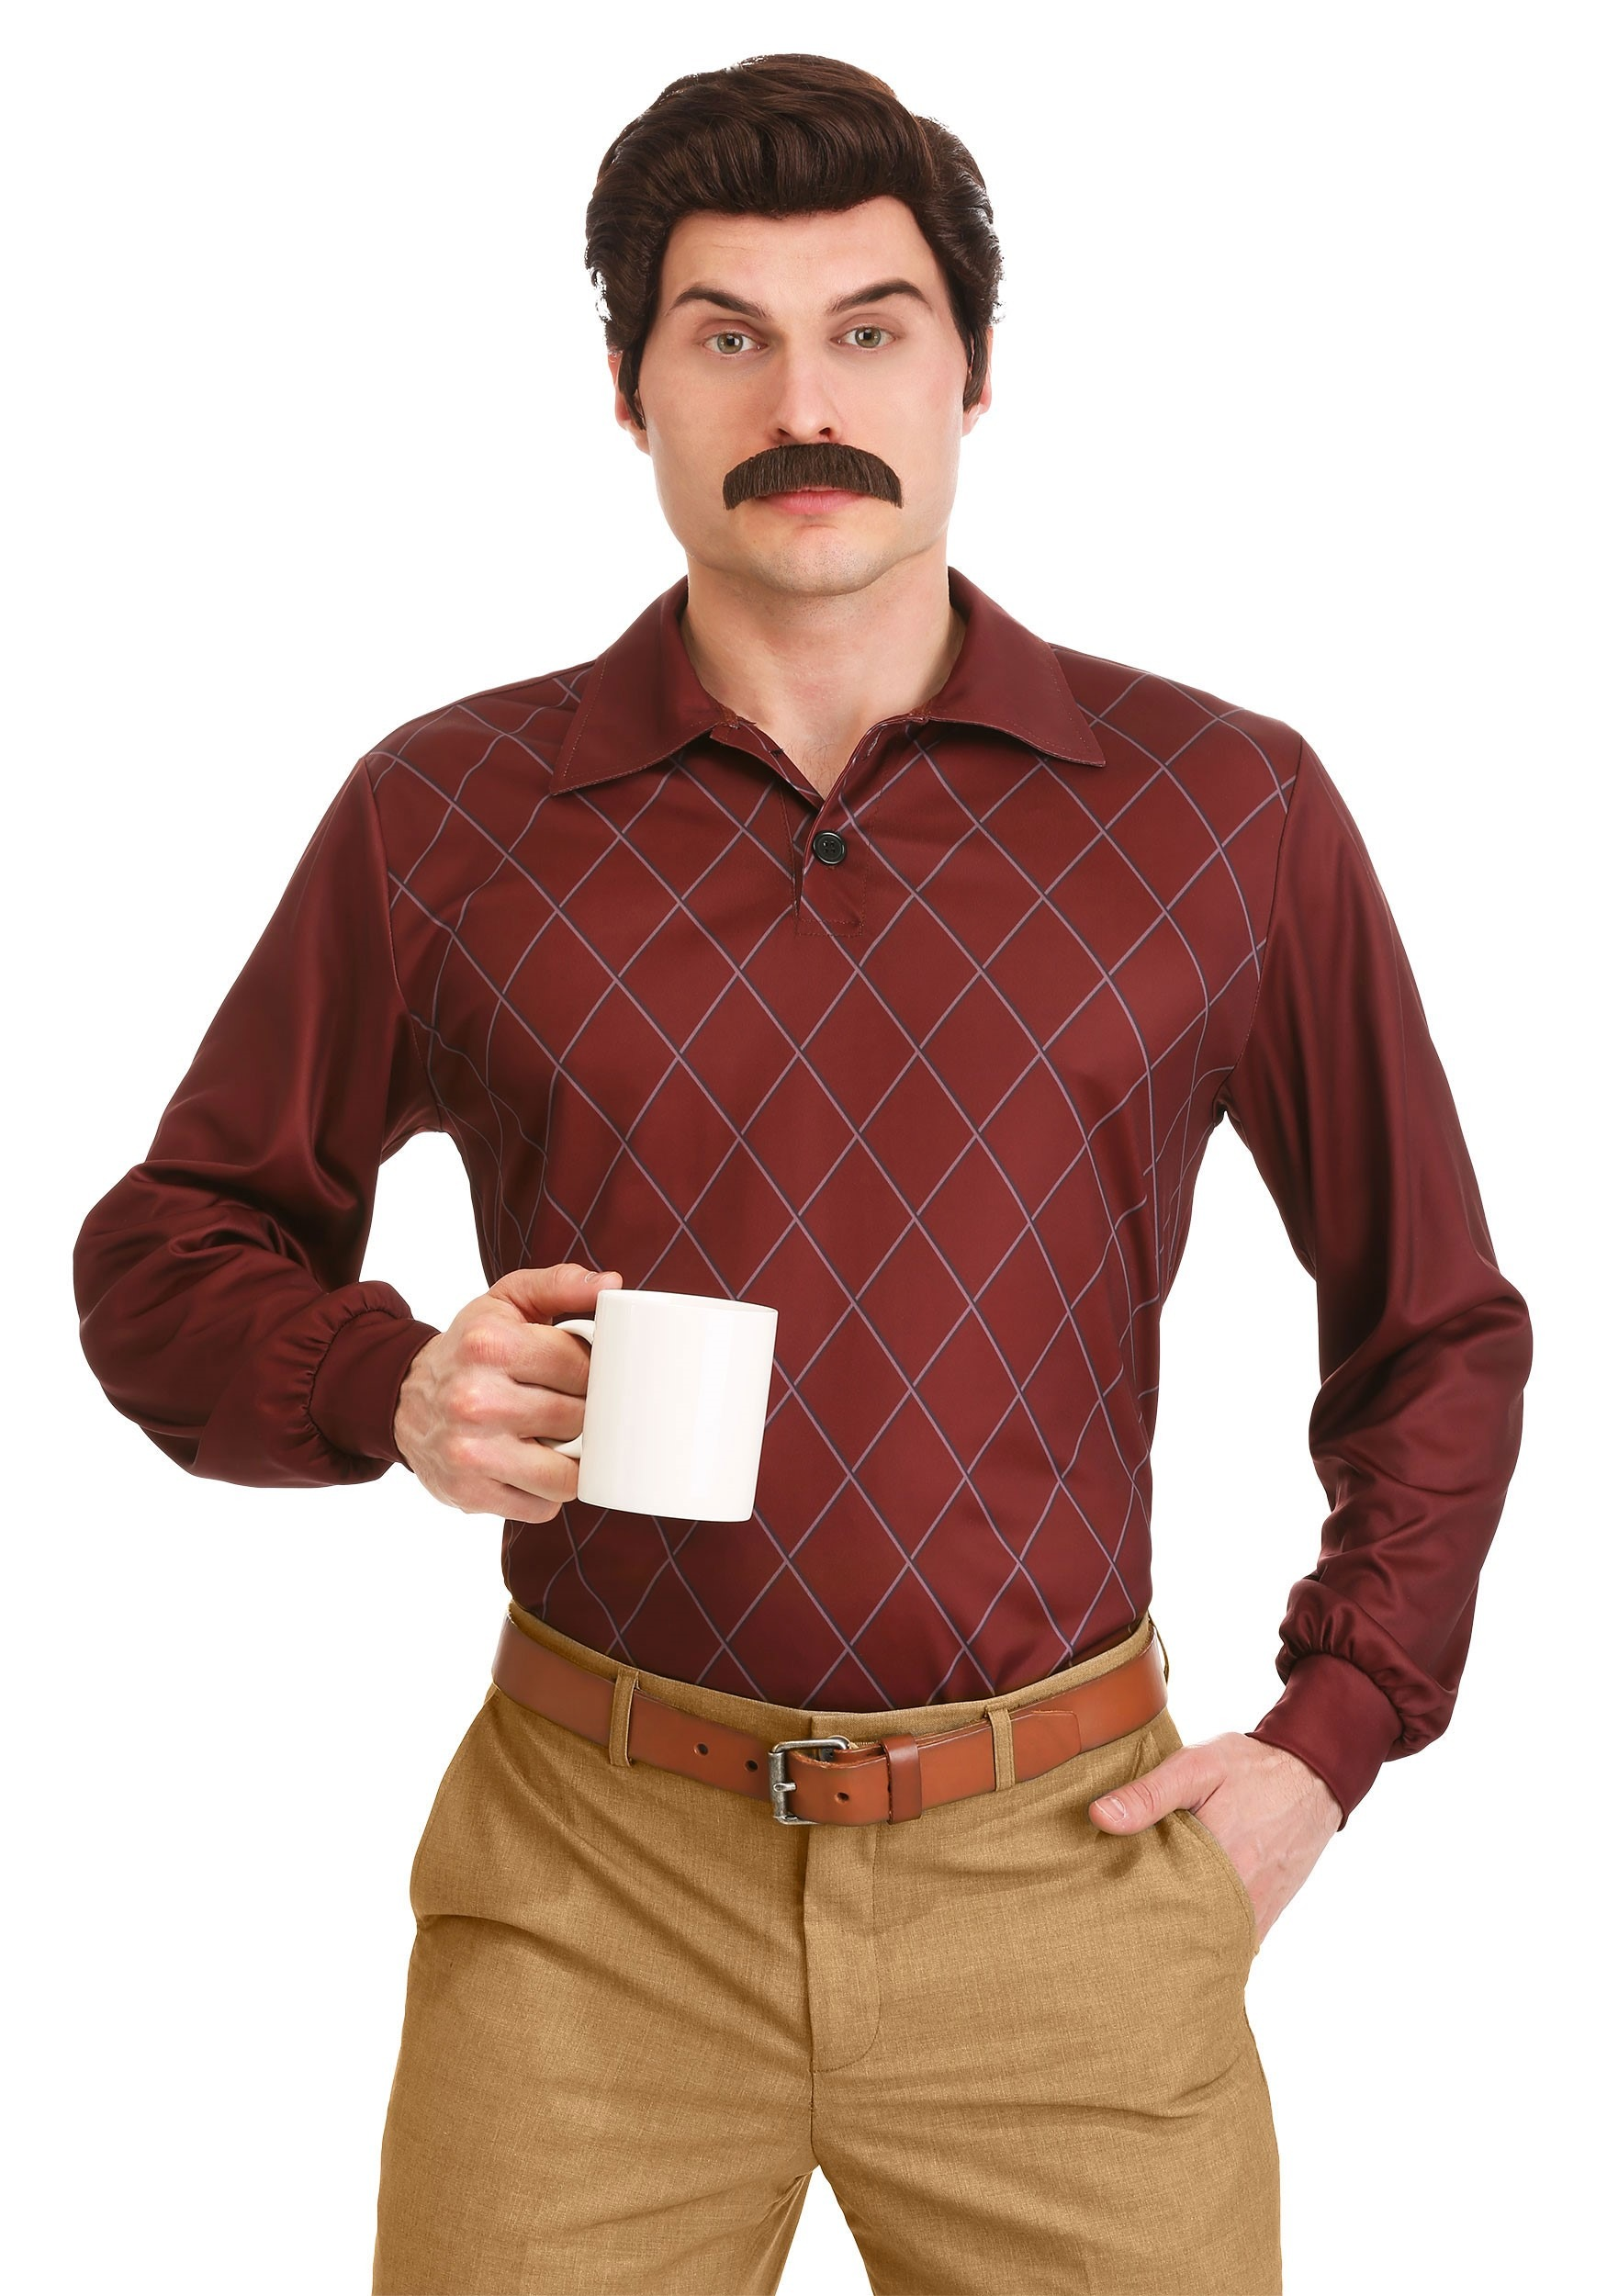 Parks and Recreation Ron Swanson Costume for Adults